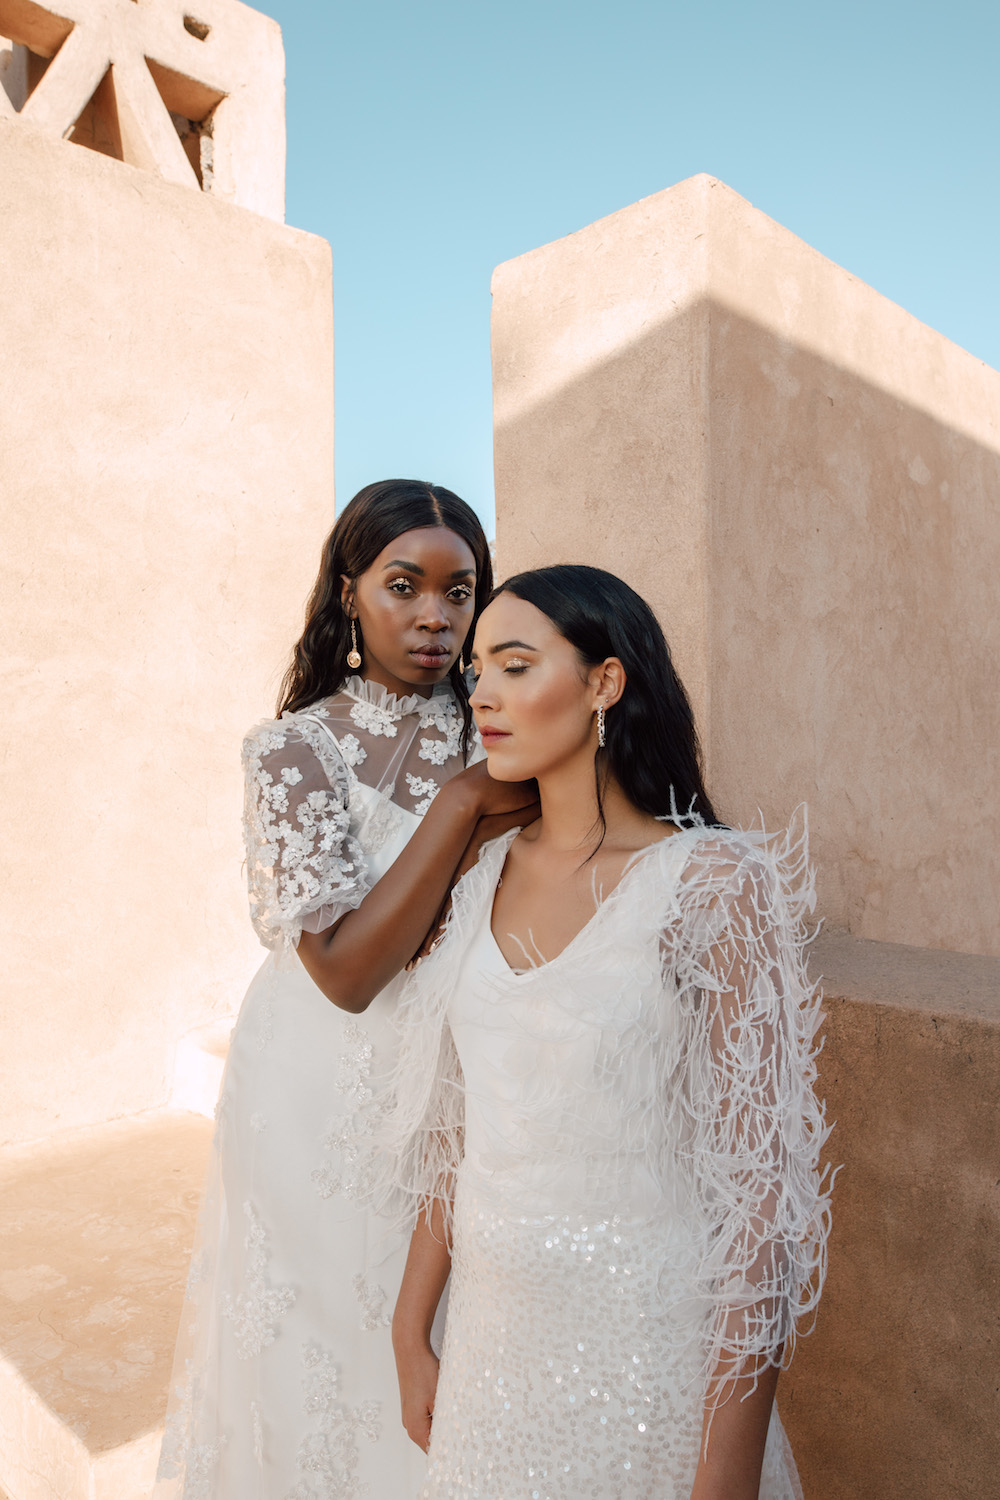 Two women in wedding dresses outside next to terra cotta building